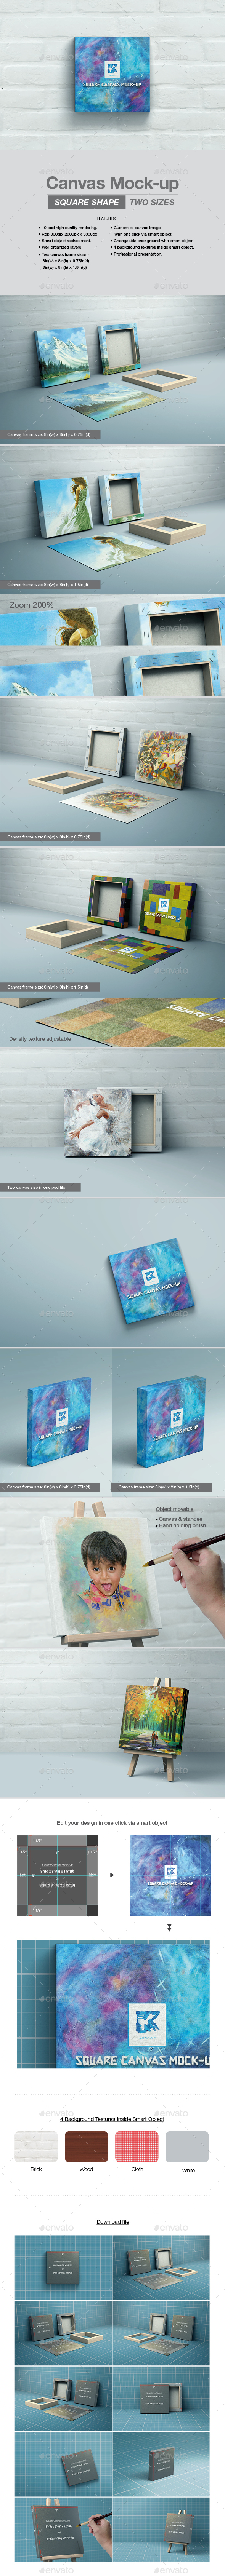 Square Canvas Mock-up - Print Product Mock-Ups